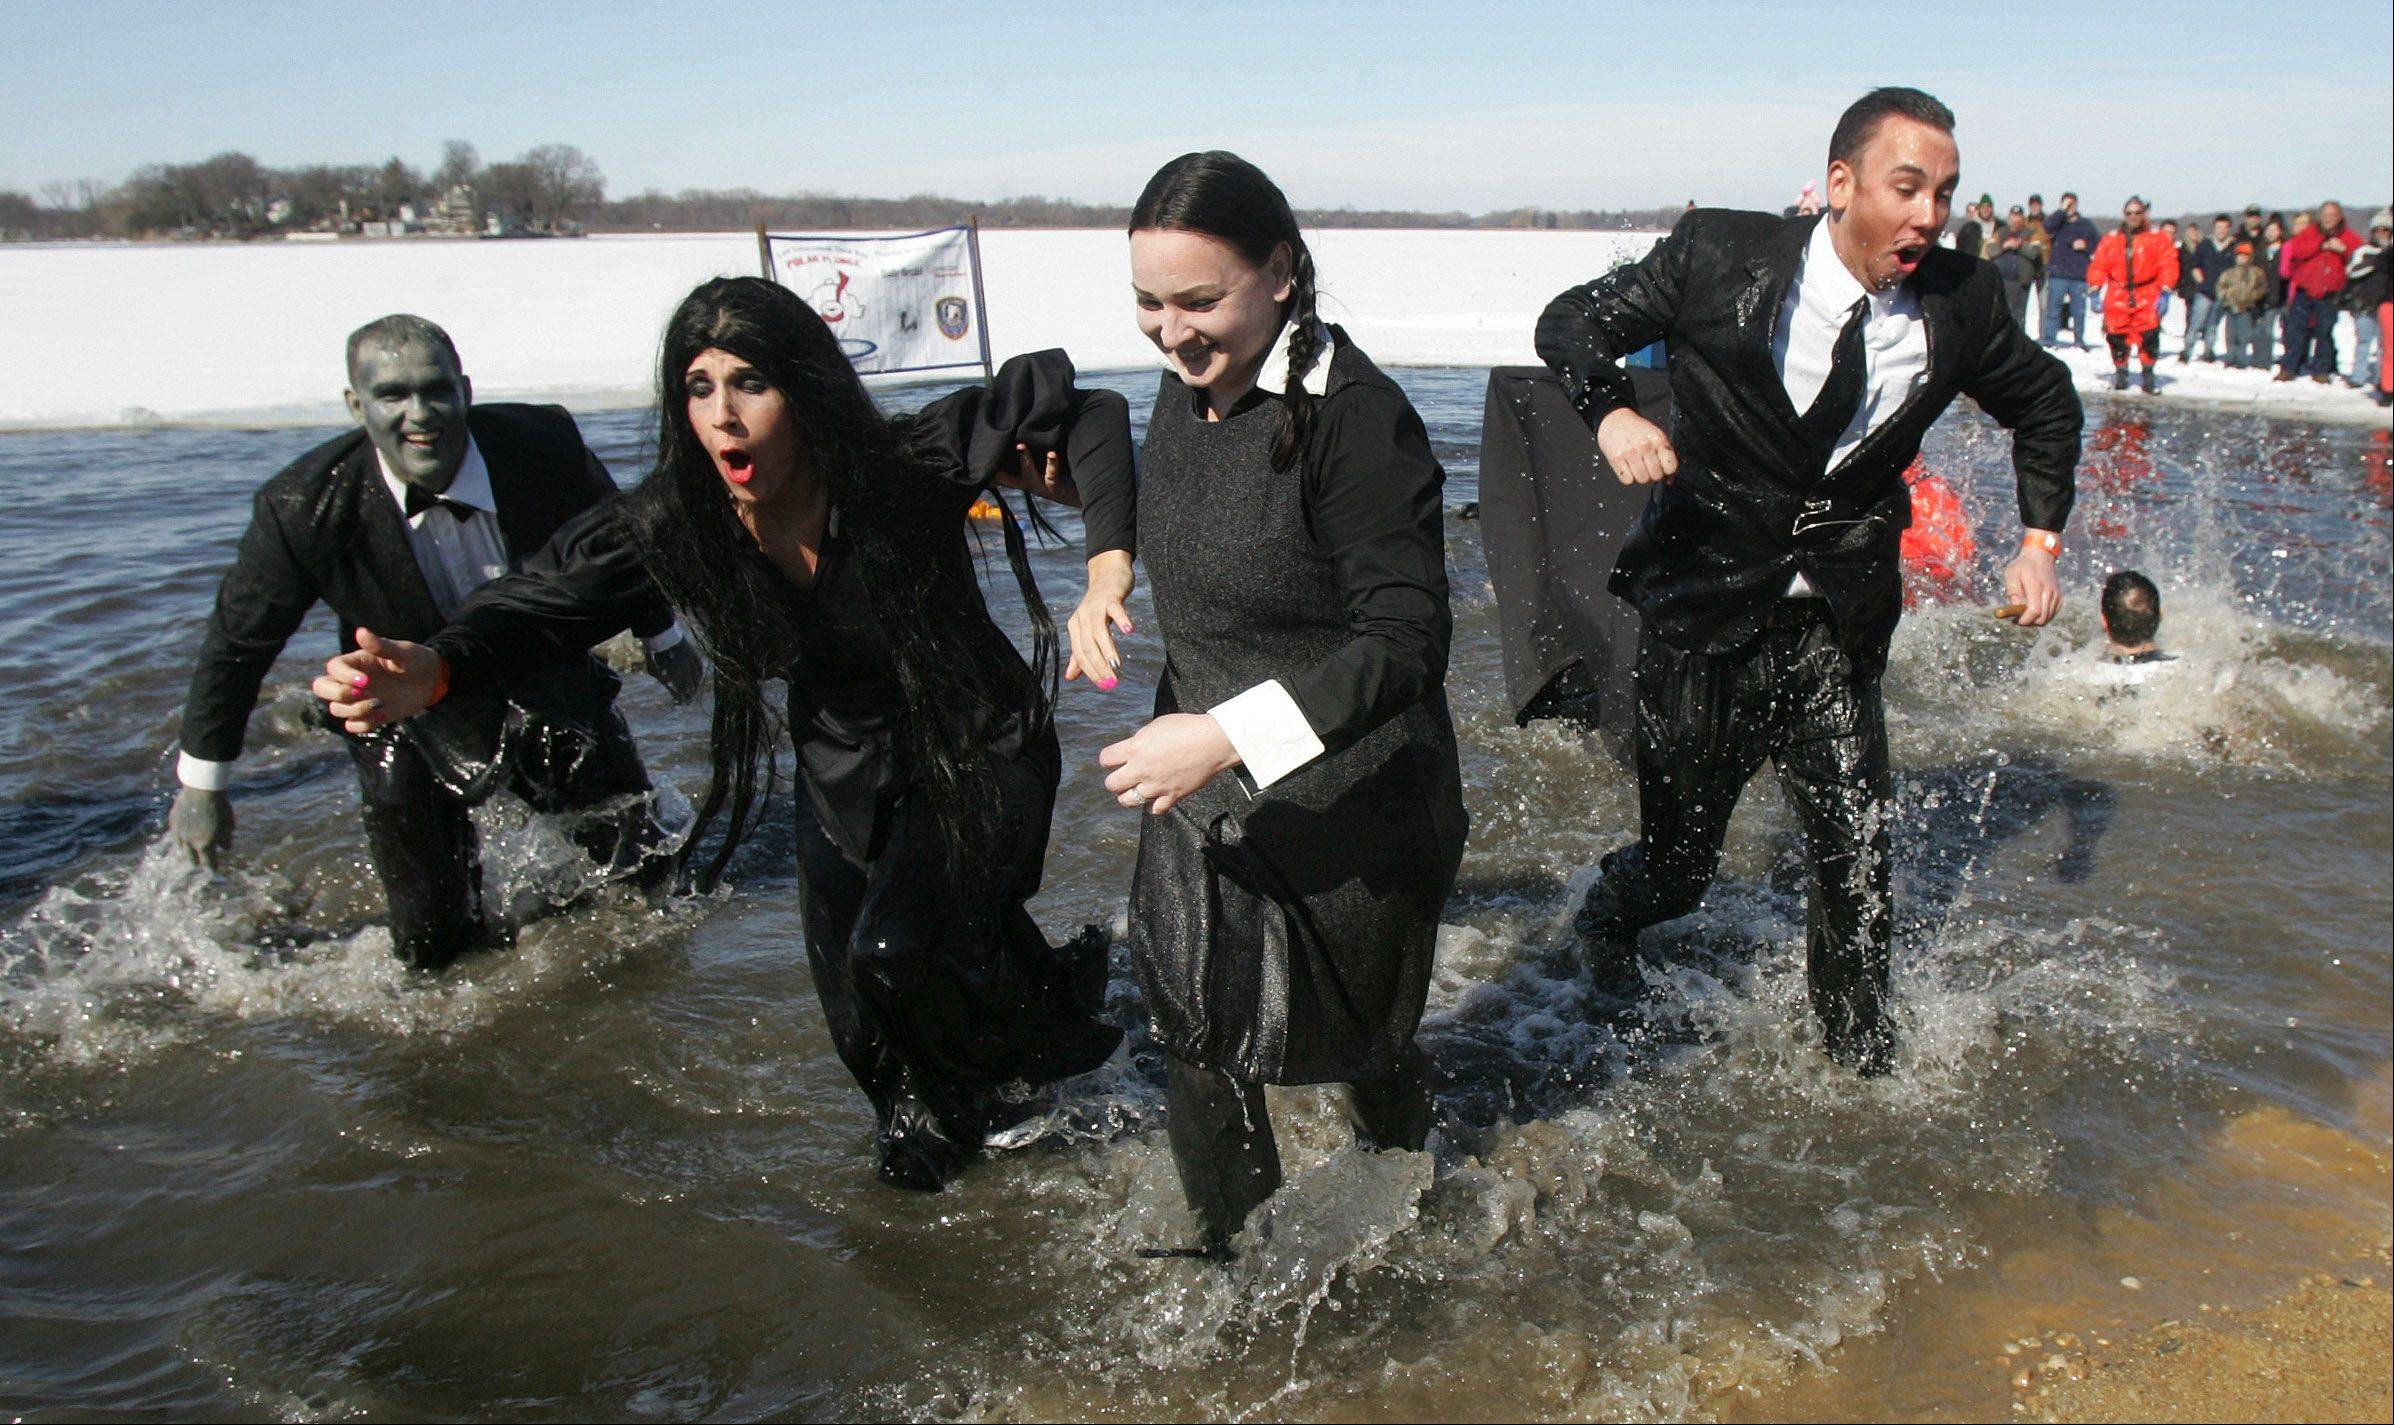 Members of the Grayslake Police Department dressed as the Addams Family as they run out of the cold lake during the annual Fox Lake Polar Plunge Sunday at Lakefront Park. The funds raised will benefit Special Olympics Illinois Northeastern/Area 13, which serves athletes with physical and intellectual disabilities in Lake and McHenry counties.